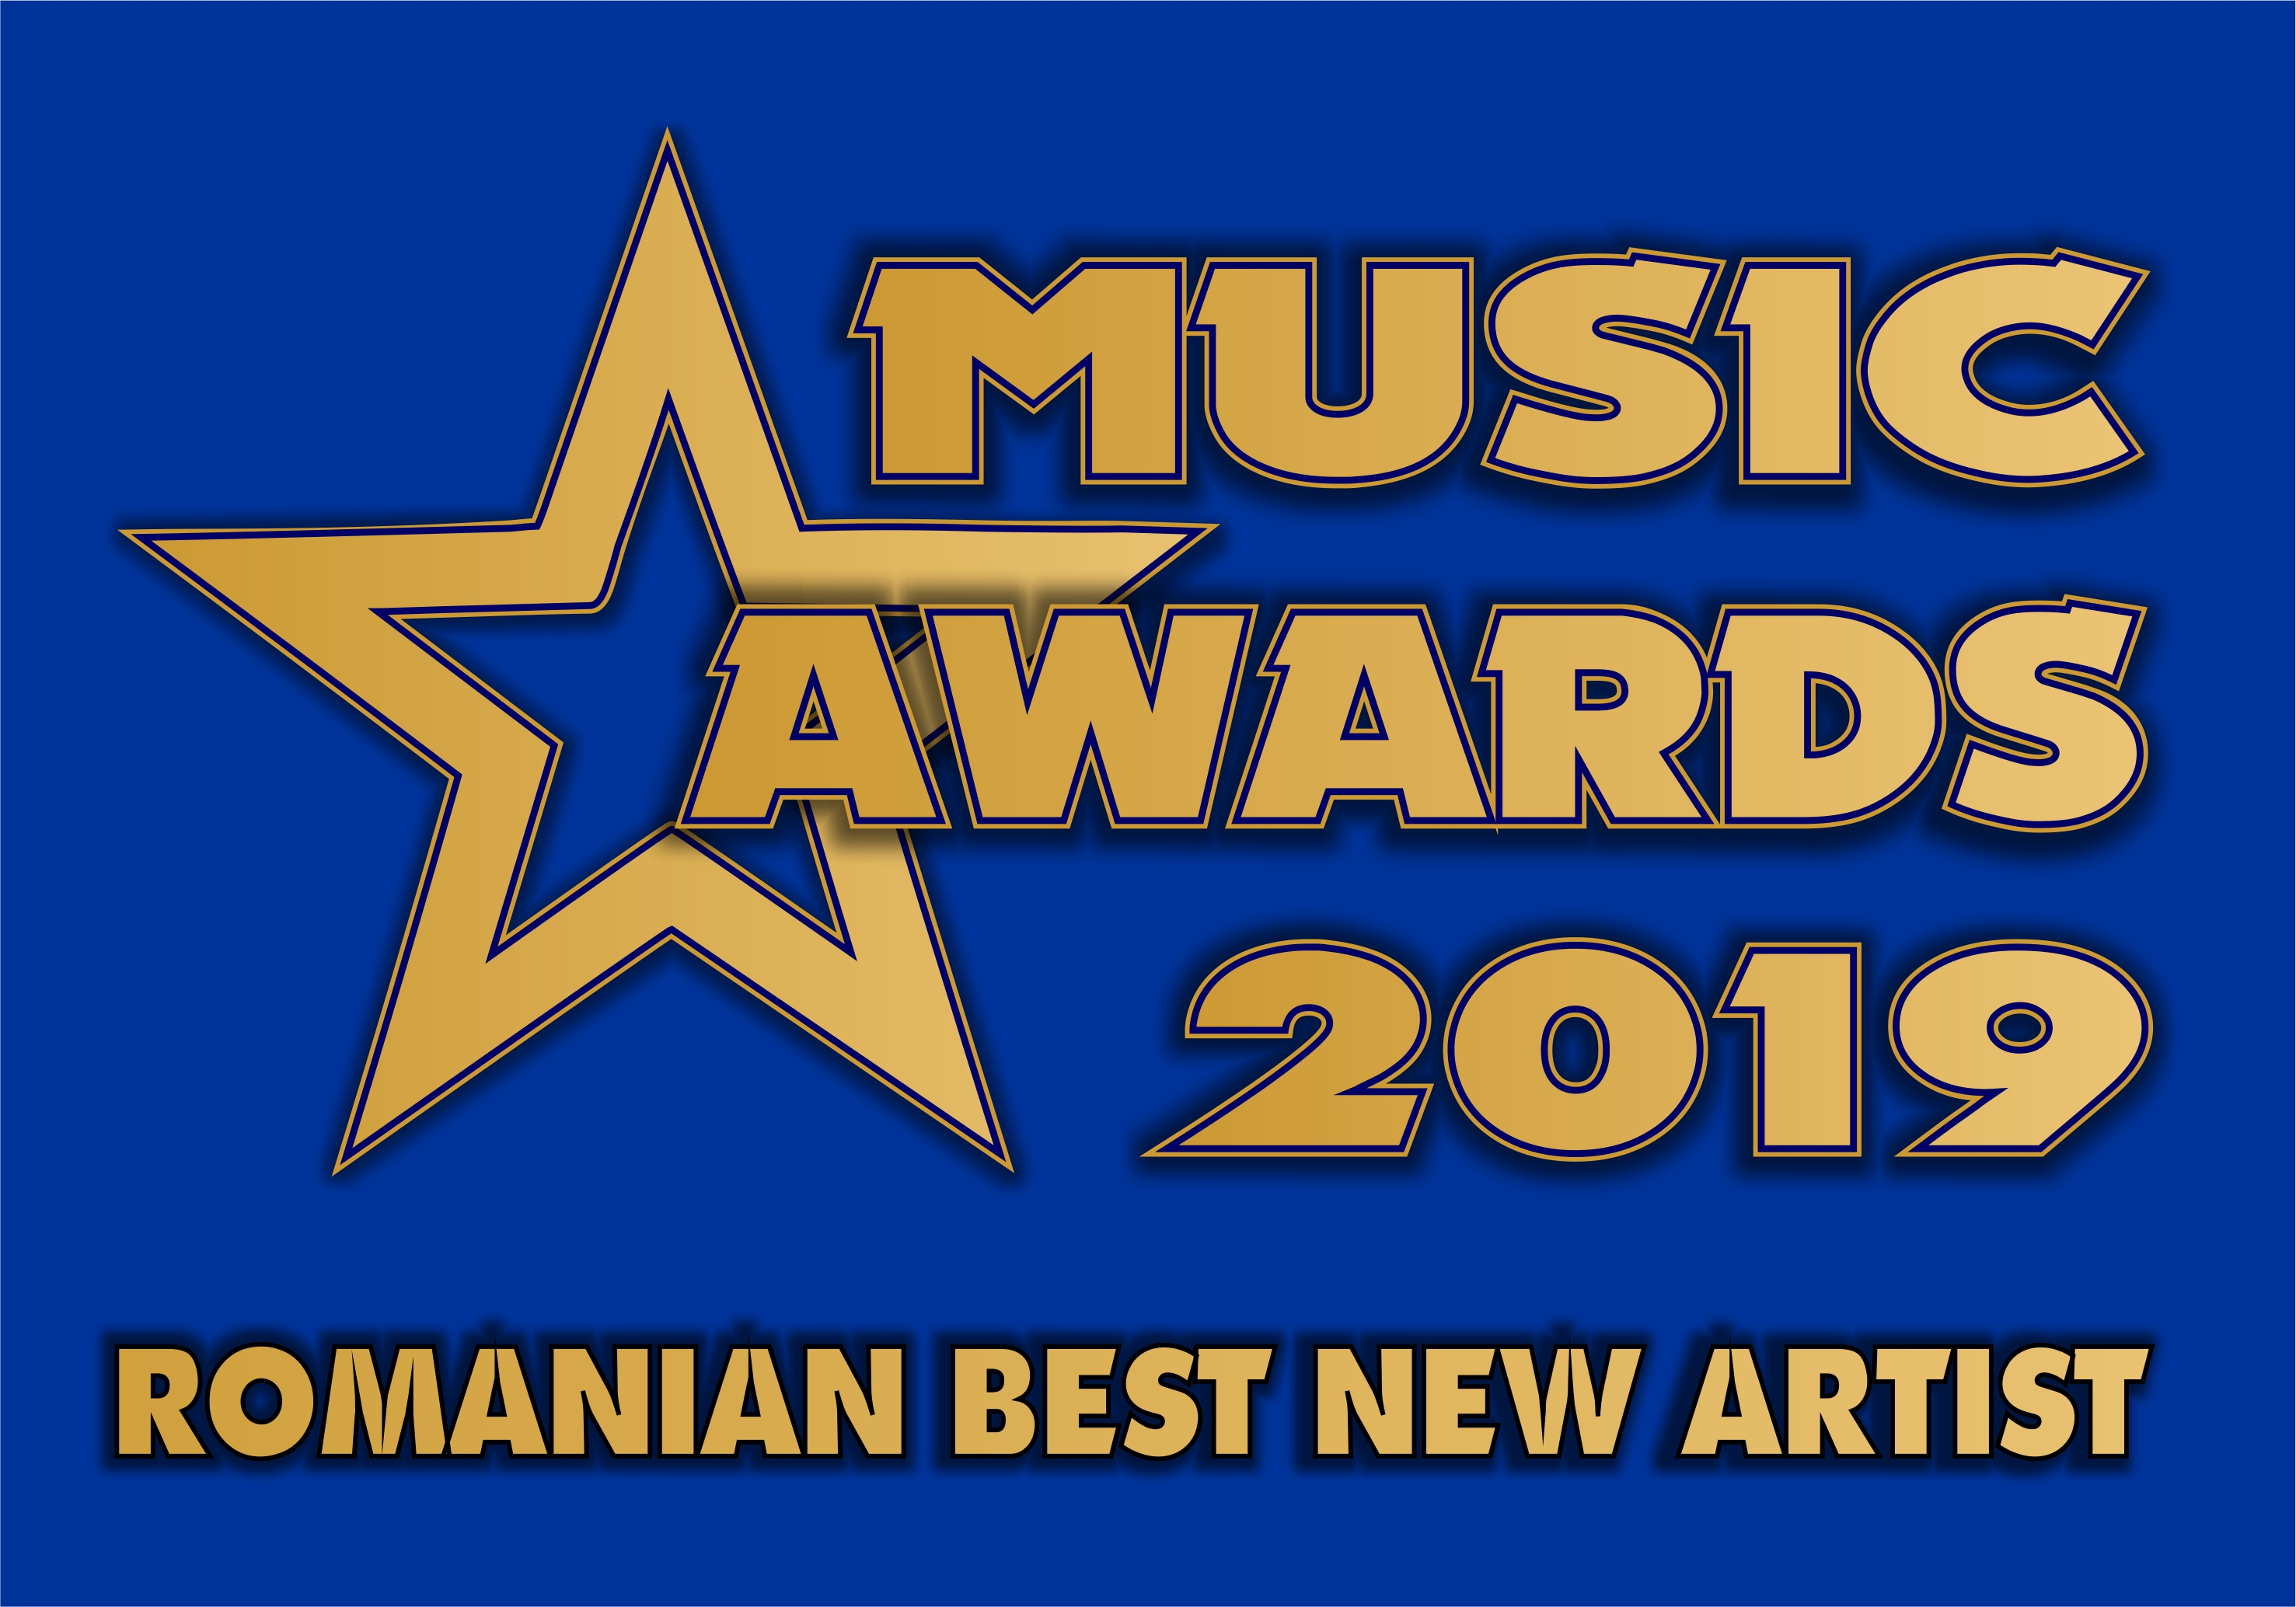 romanian-best-new-artist.jpg